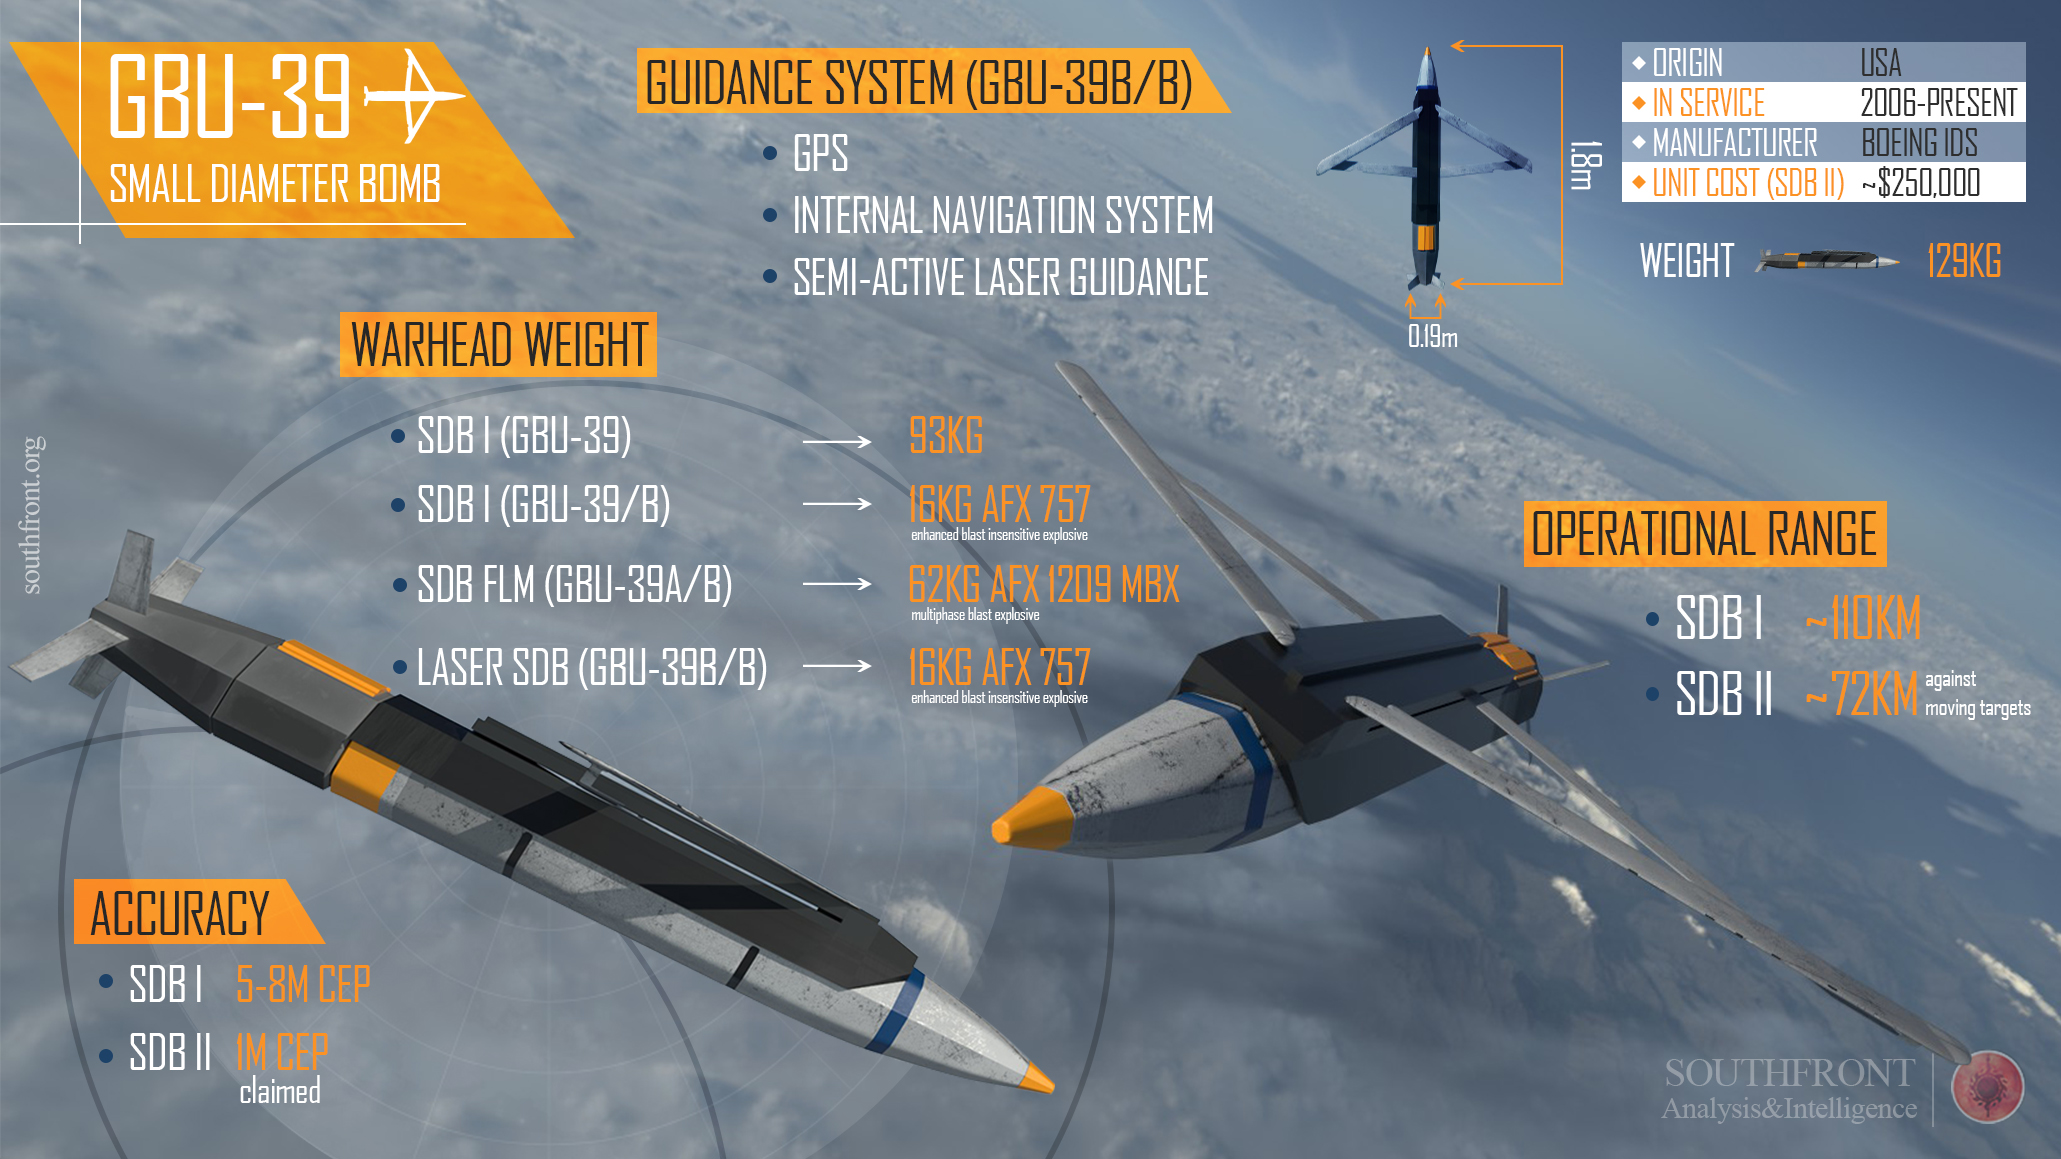 Faulty Fin Design Delays Deployment Of Small Diameter Bomb By US Navy And Air Force